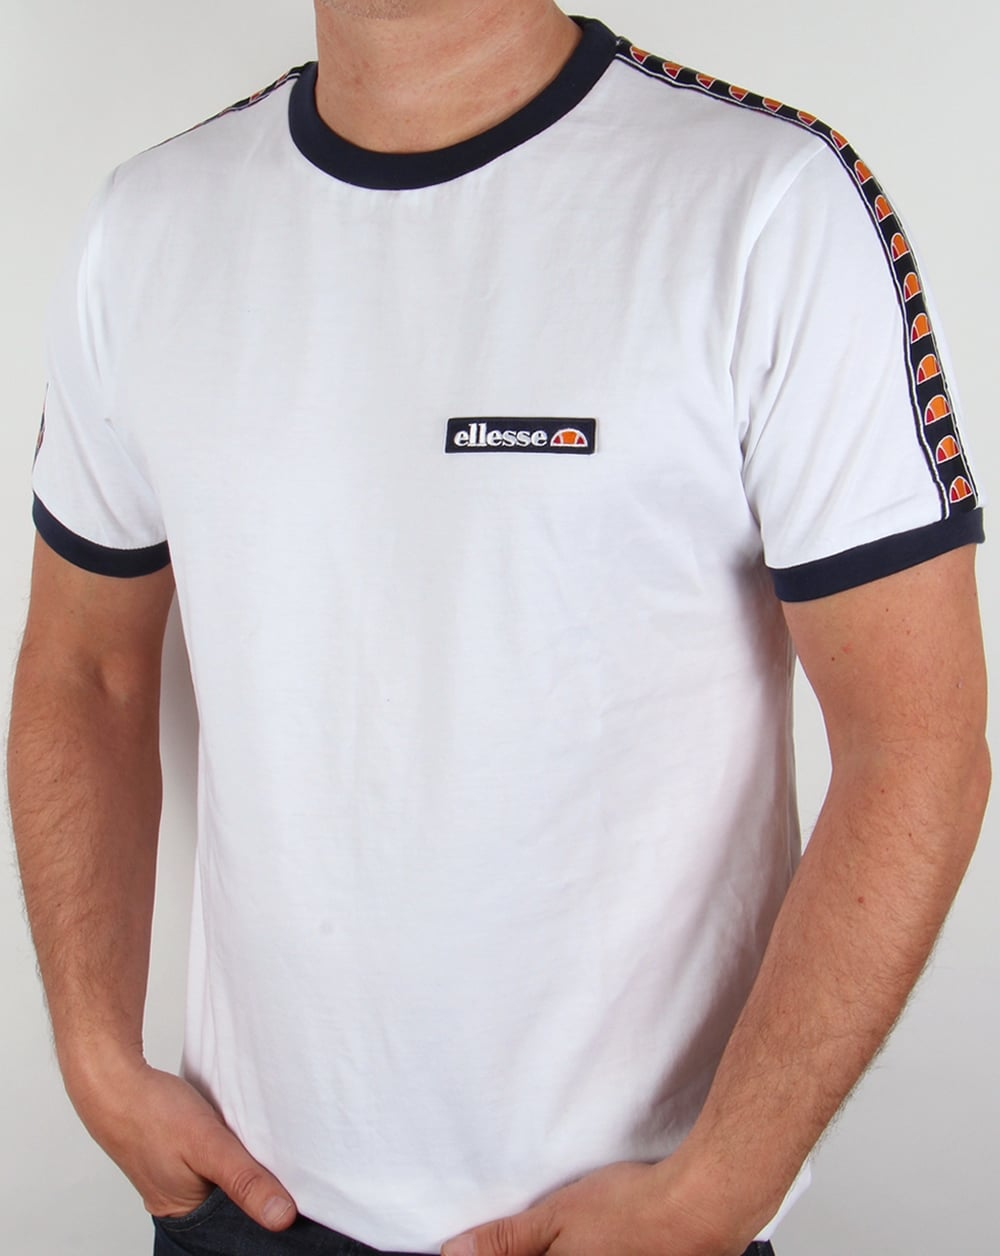 ellesse sarnano ringer t shirt white tee mens crew neck. Black Bedroom Furniture Sets. Home Design Ideas